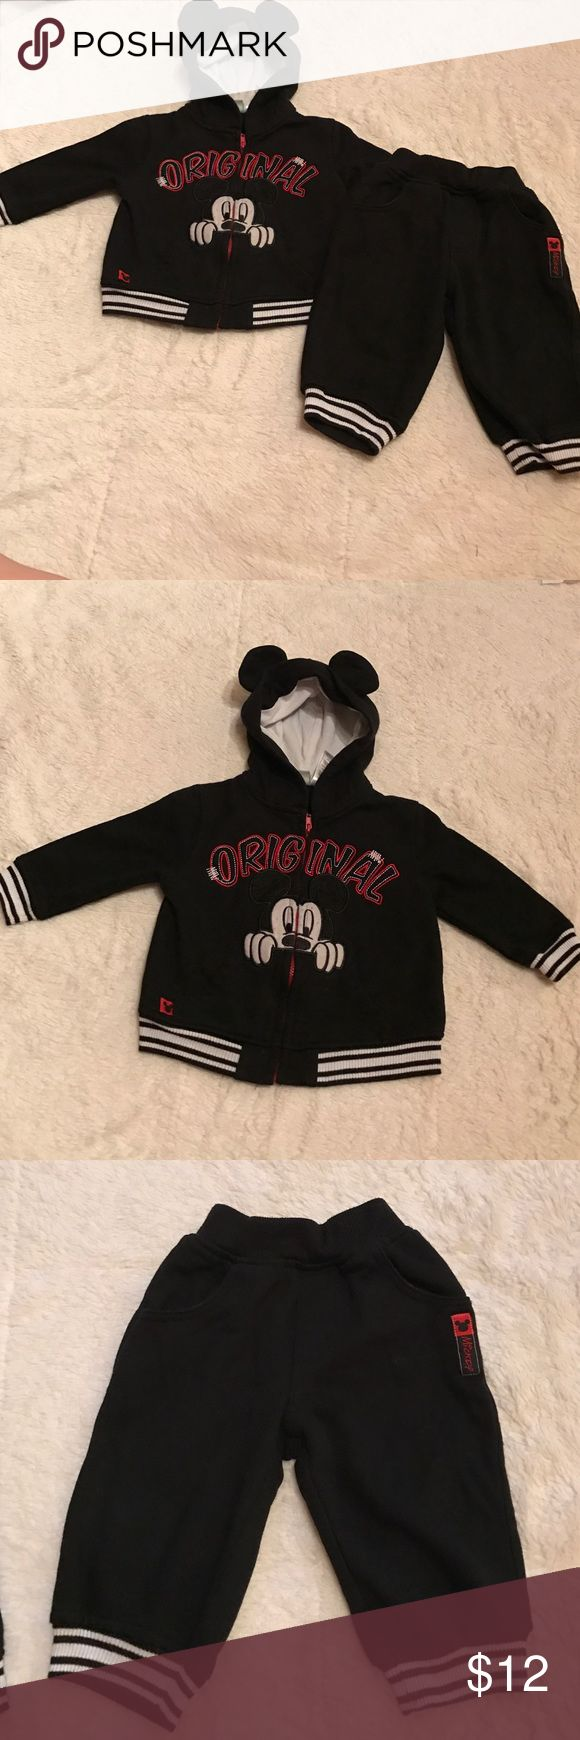 Mickey Mouse matching set Black and White matching set of sweatpants and a zip up hoodie from Disney. Mickey Mouse on the front. Pockets on hoodie and pants. Size 12 m Disney Matching Sets